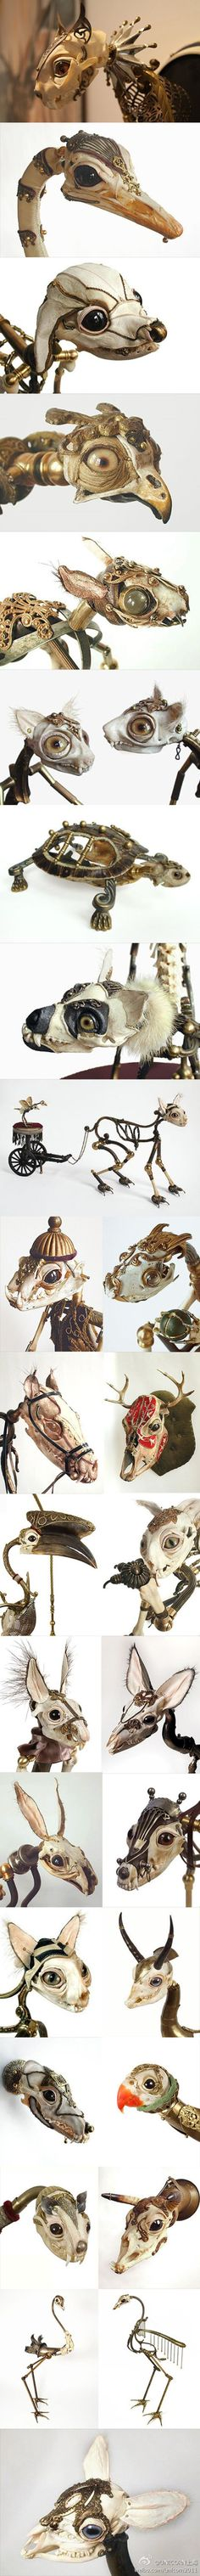 Artist: Jessica Joslin.. she completely blows me away with every piece. A truely unique twist on taxidermy art.